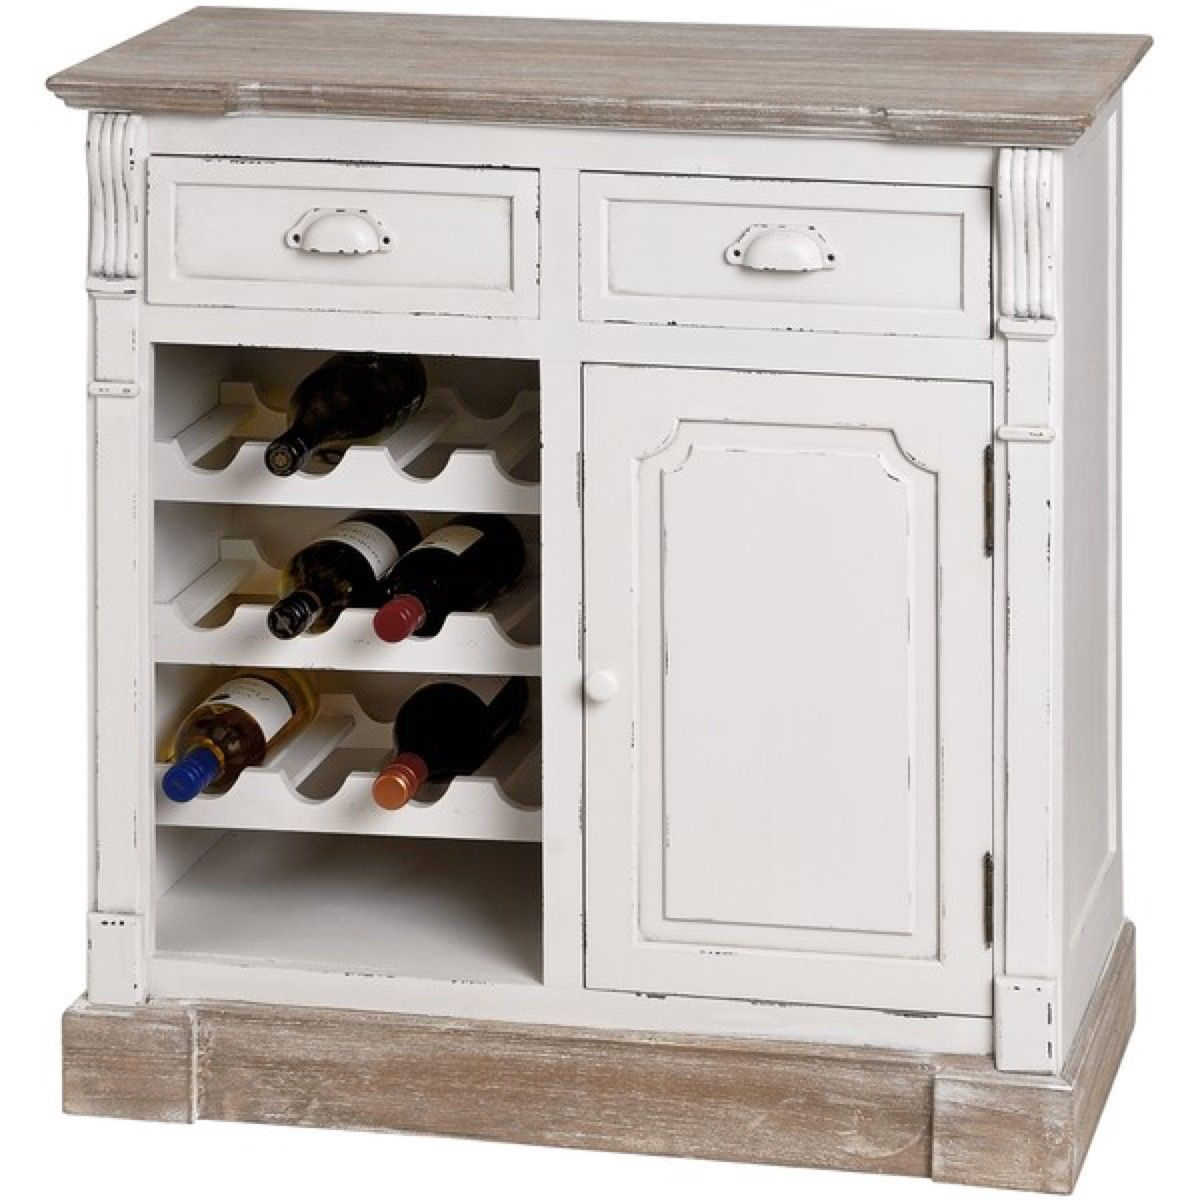 Home Interiors New England Kitchen Cabinet With Wine Rack Sideboard ...